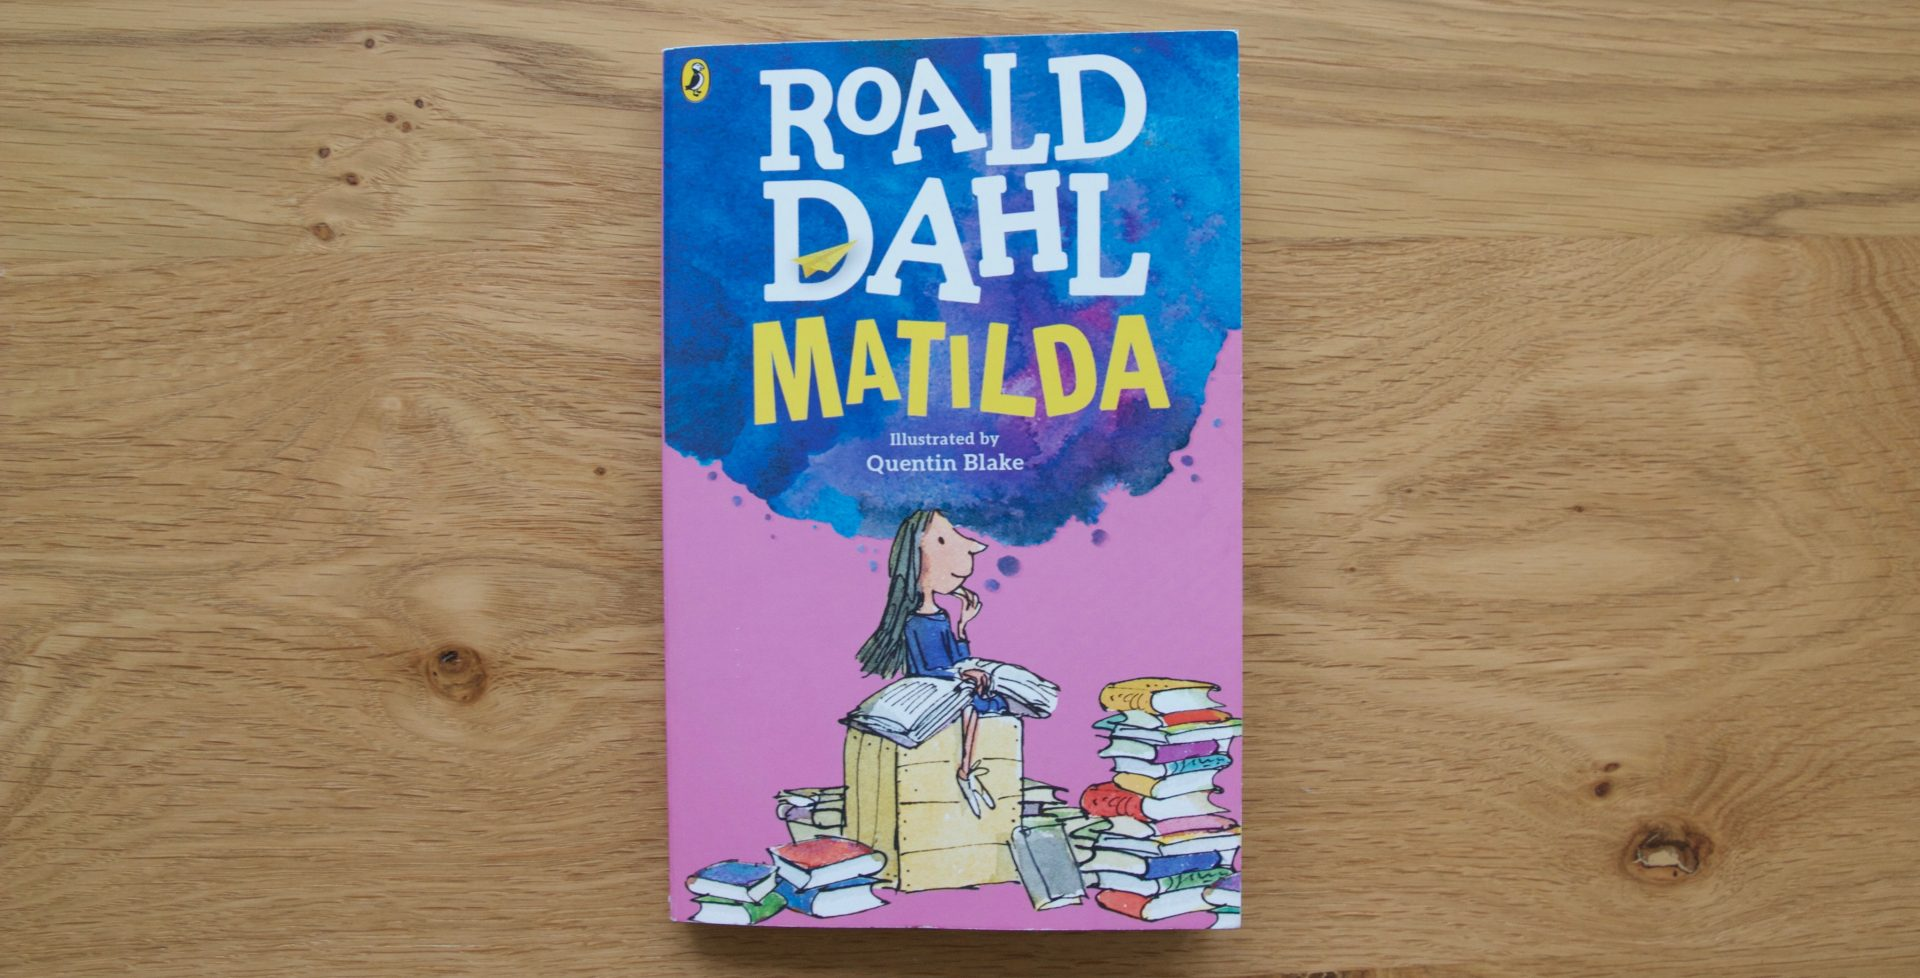 Roald Dahl's Matilda facts